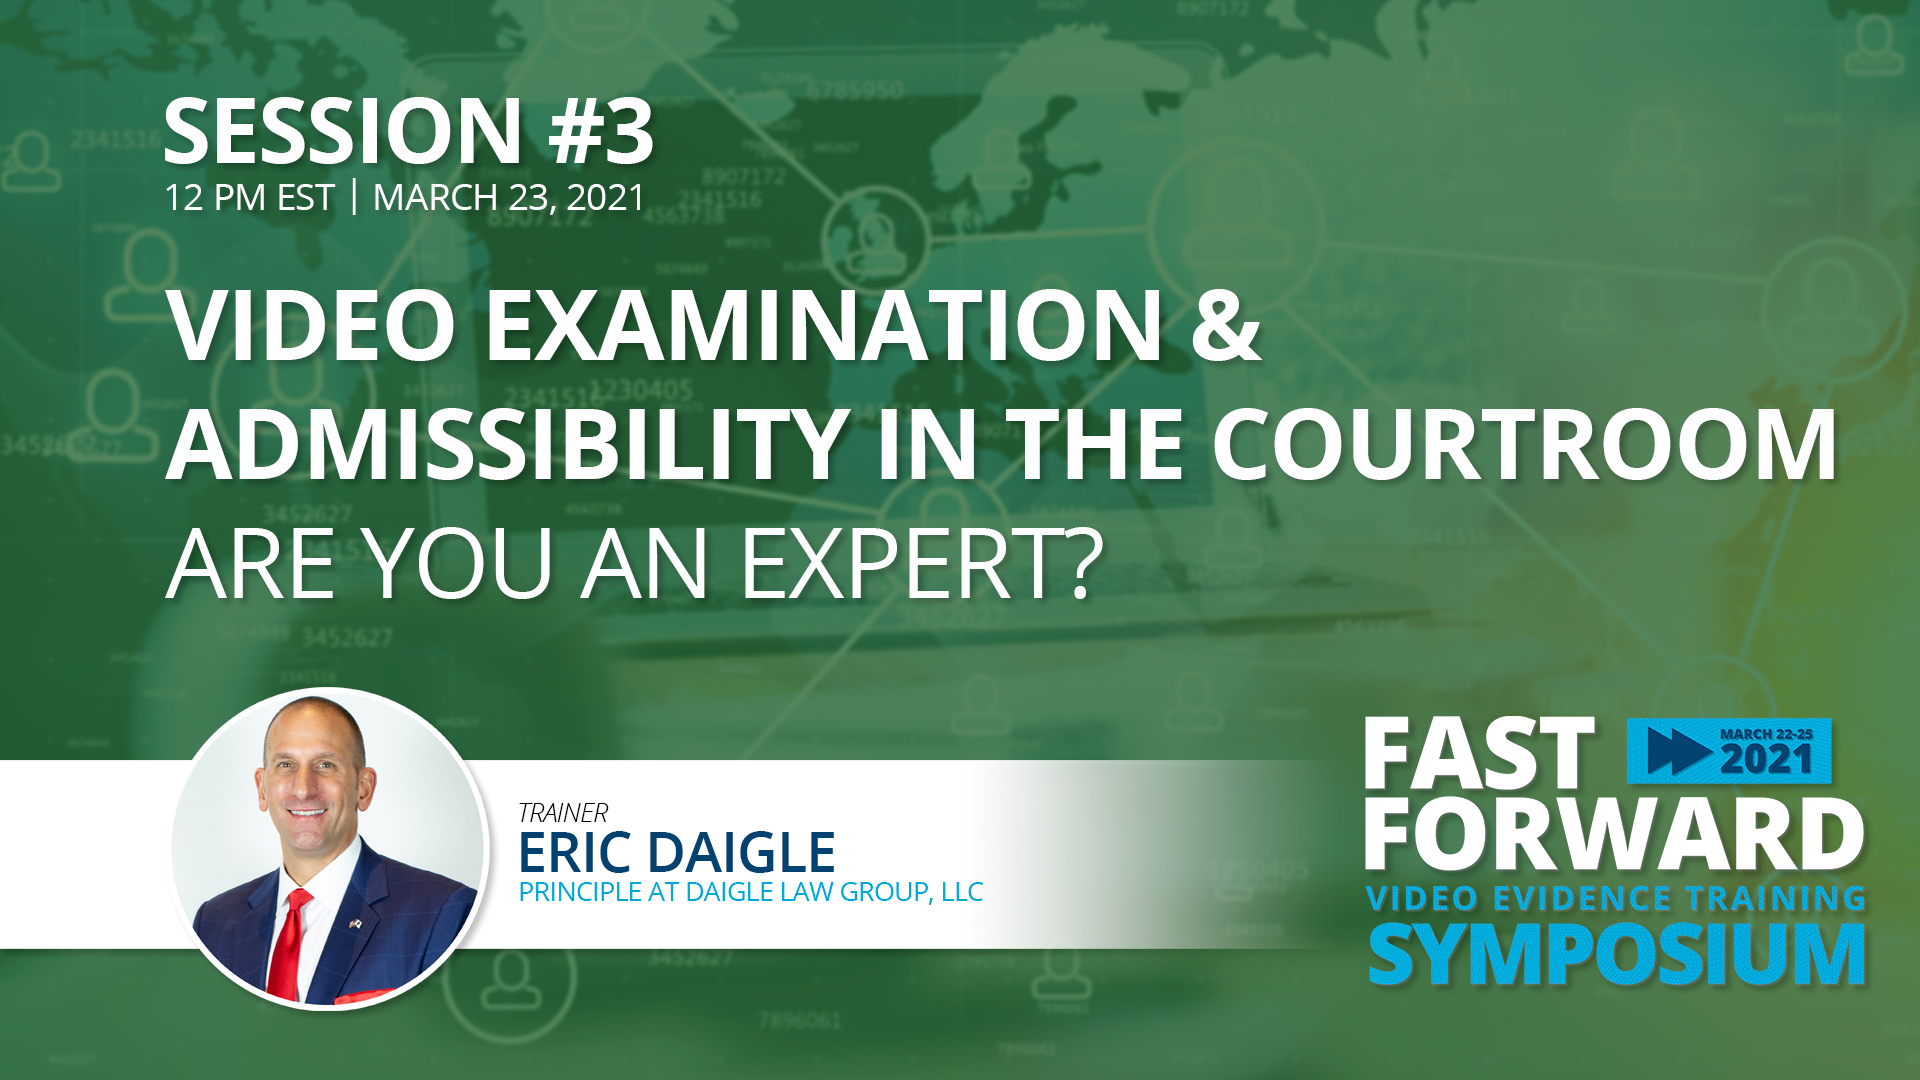 Video Examination & Admissibility in the Court